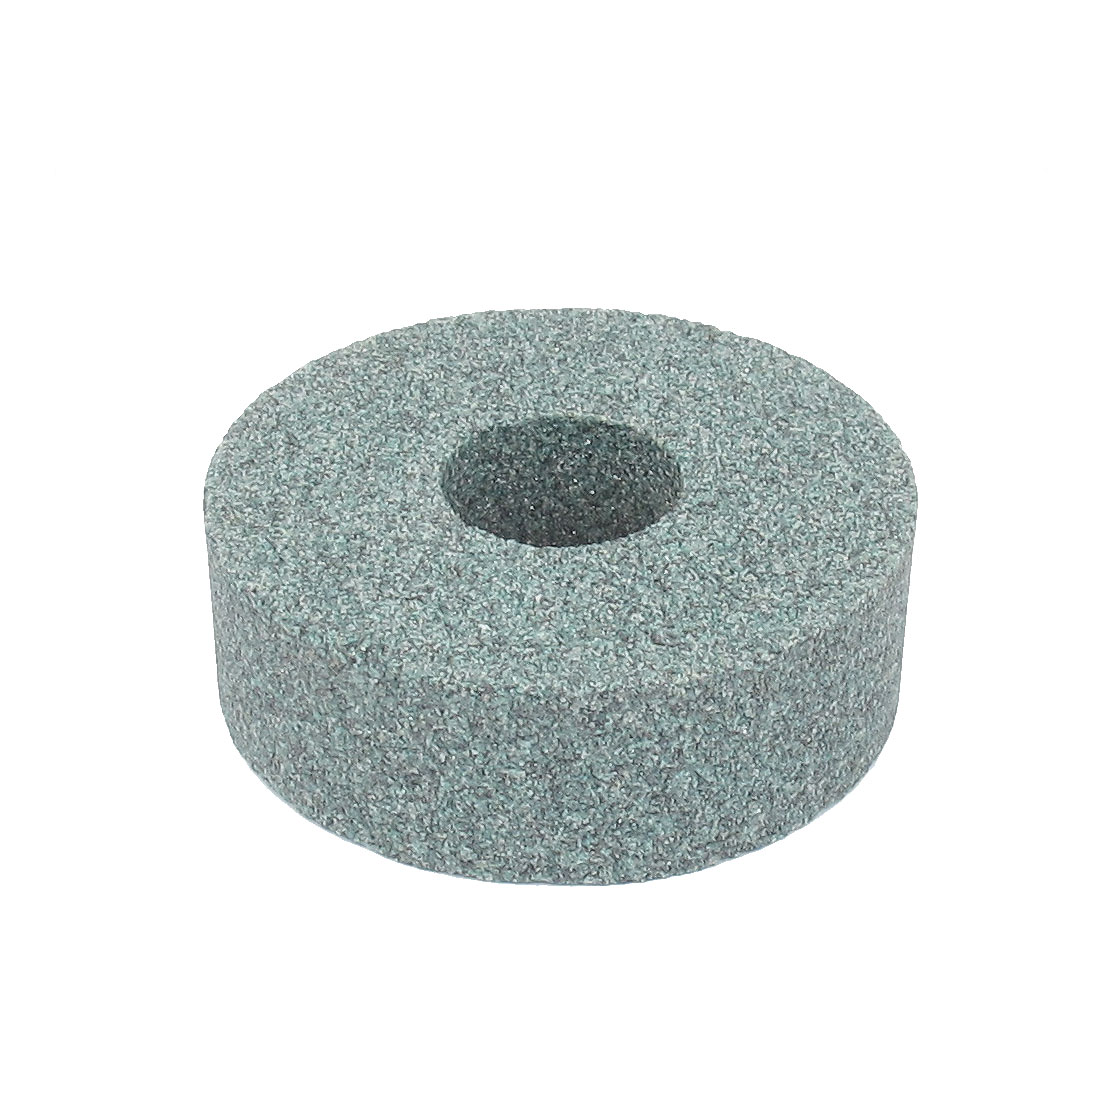 Carborundum Abrasives Round Grinding Wheel Green 60 x 20 x 20mm